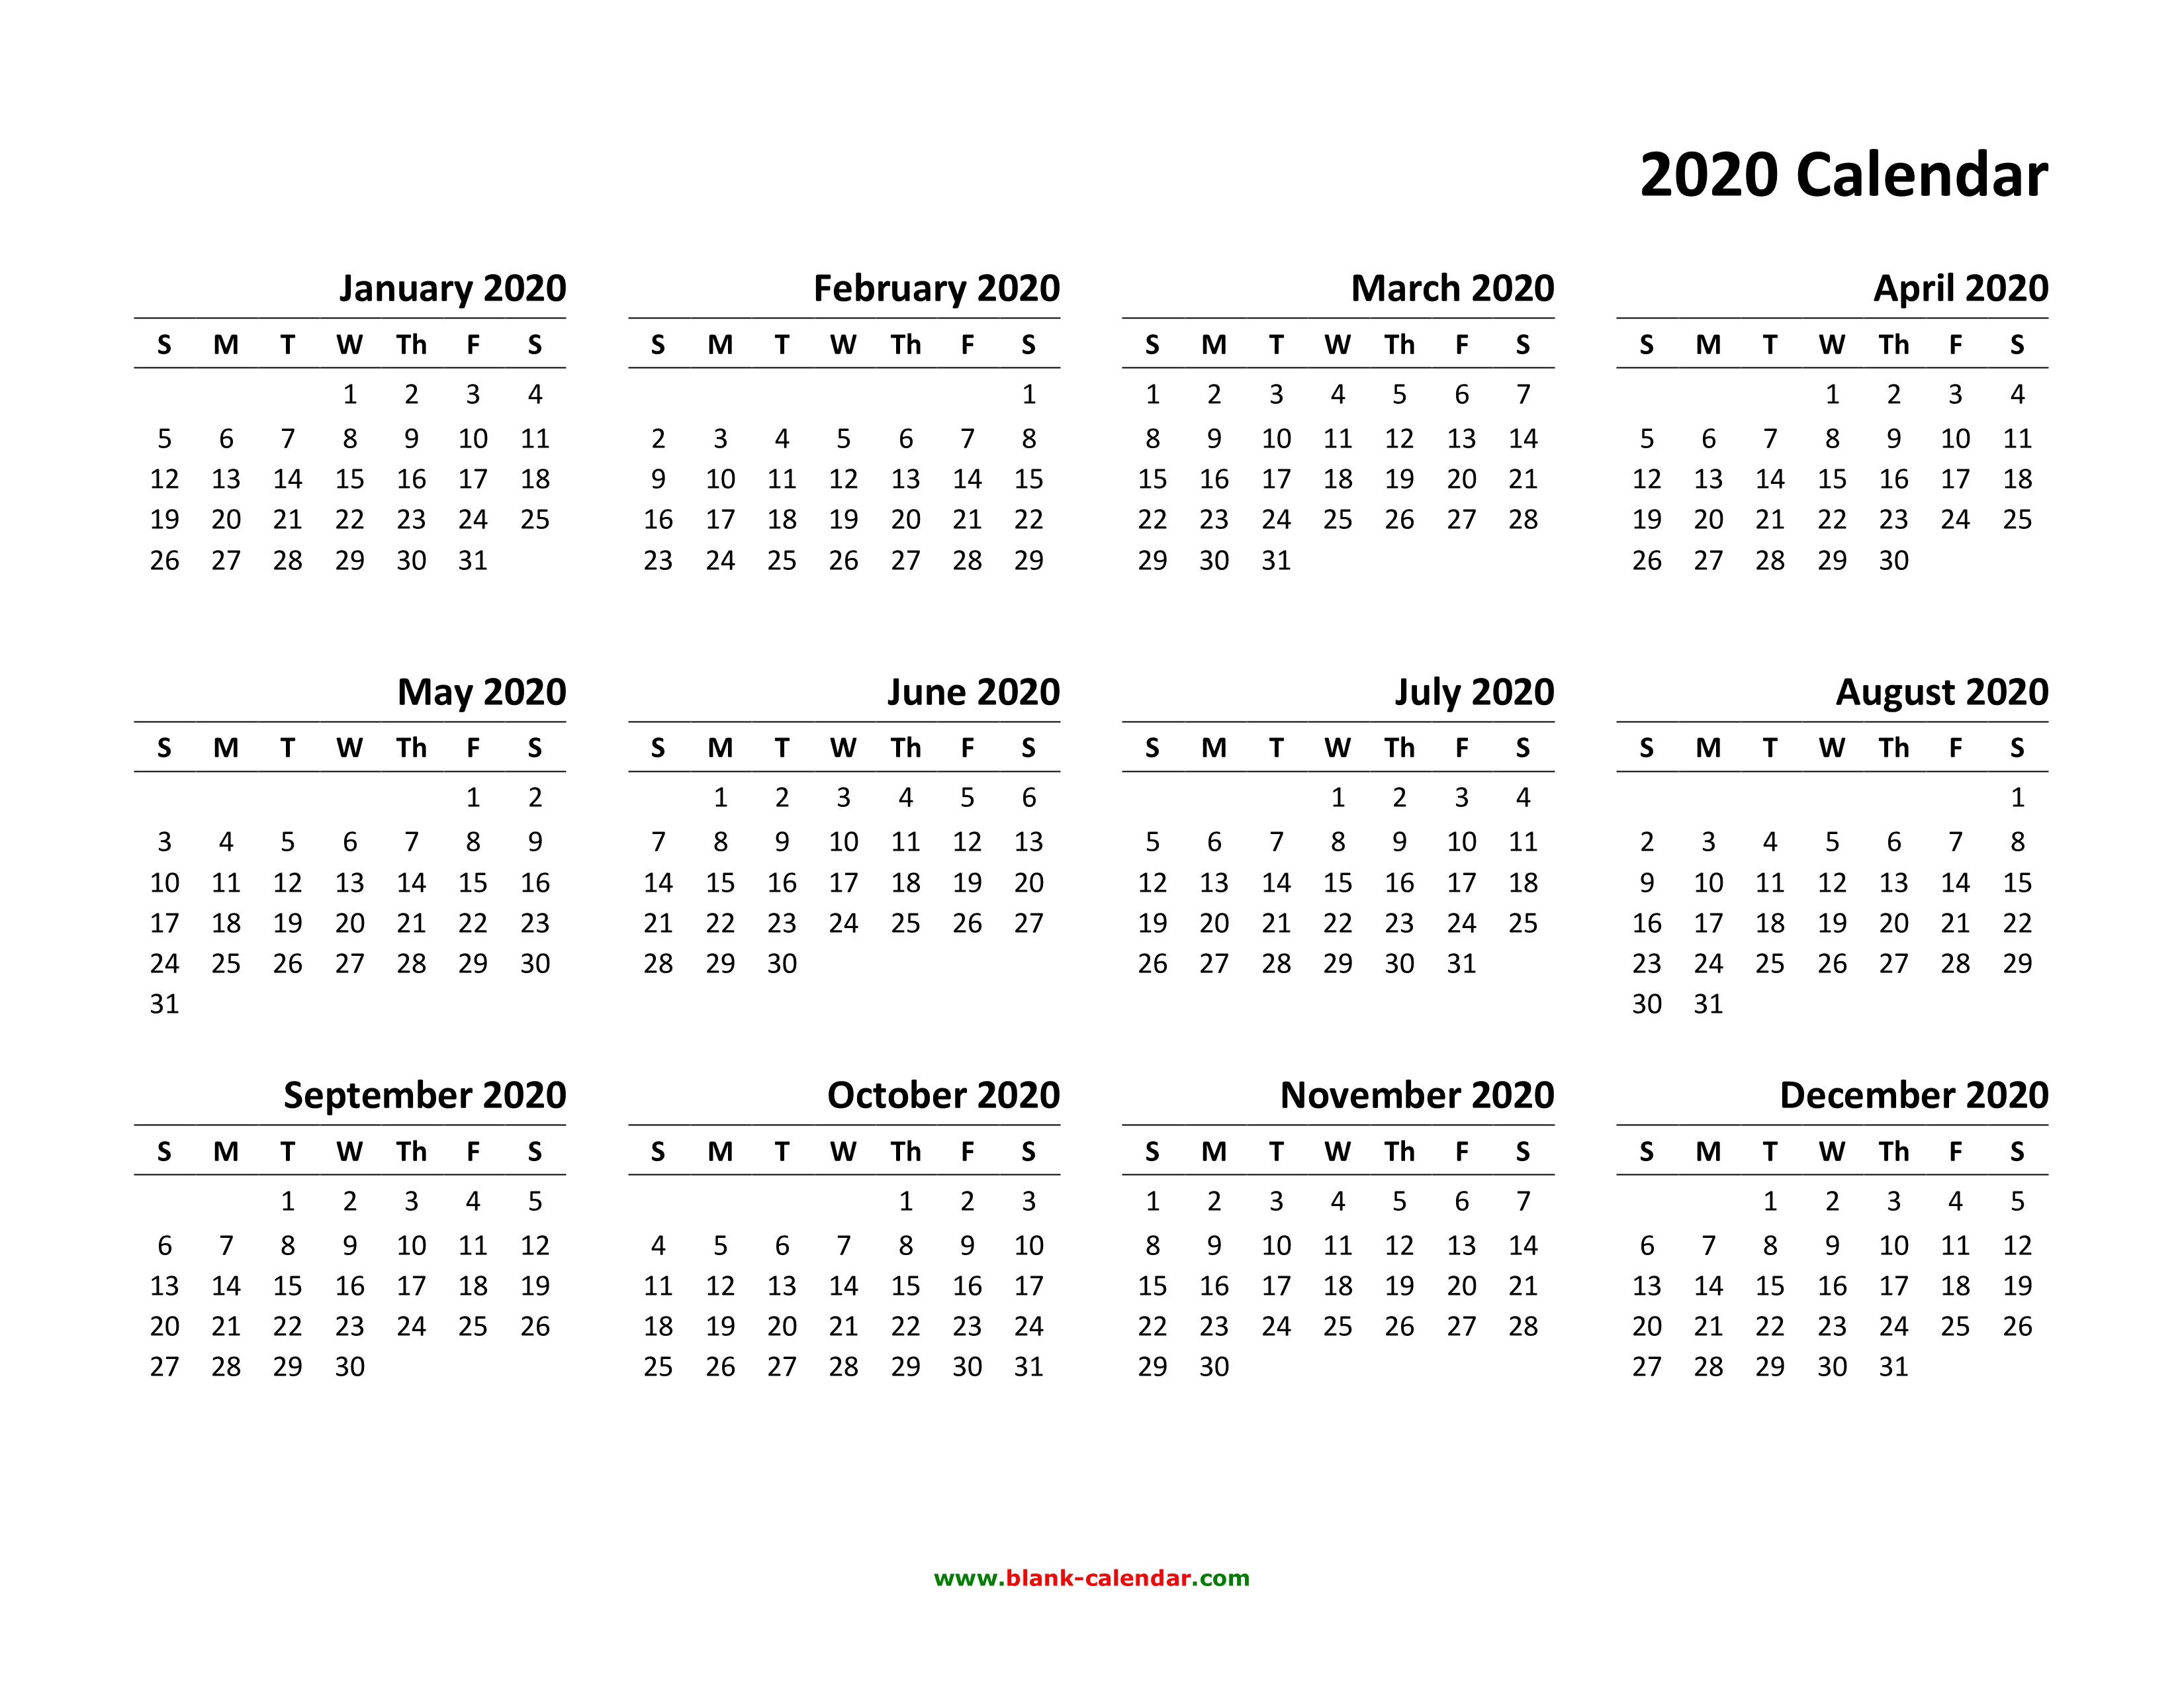 Yearly Calendar 2020 | Free Download And Print with Free Printable 2020 Calendar To I Can Edit